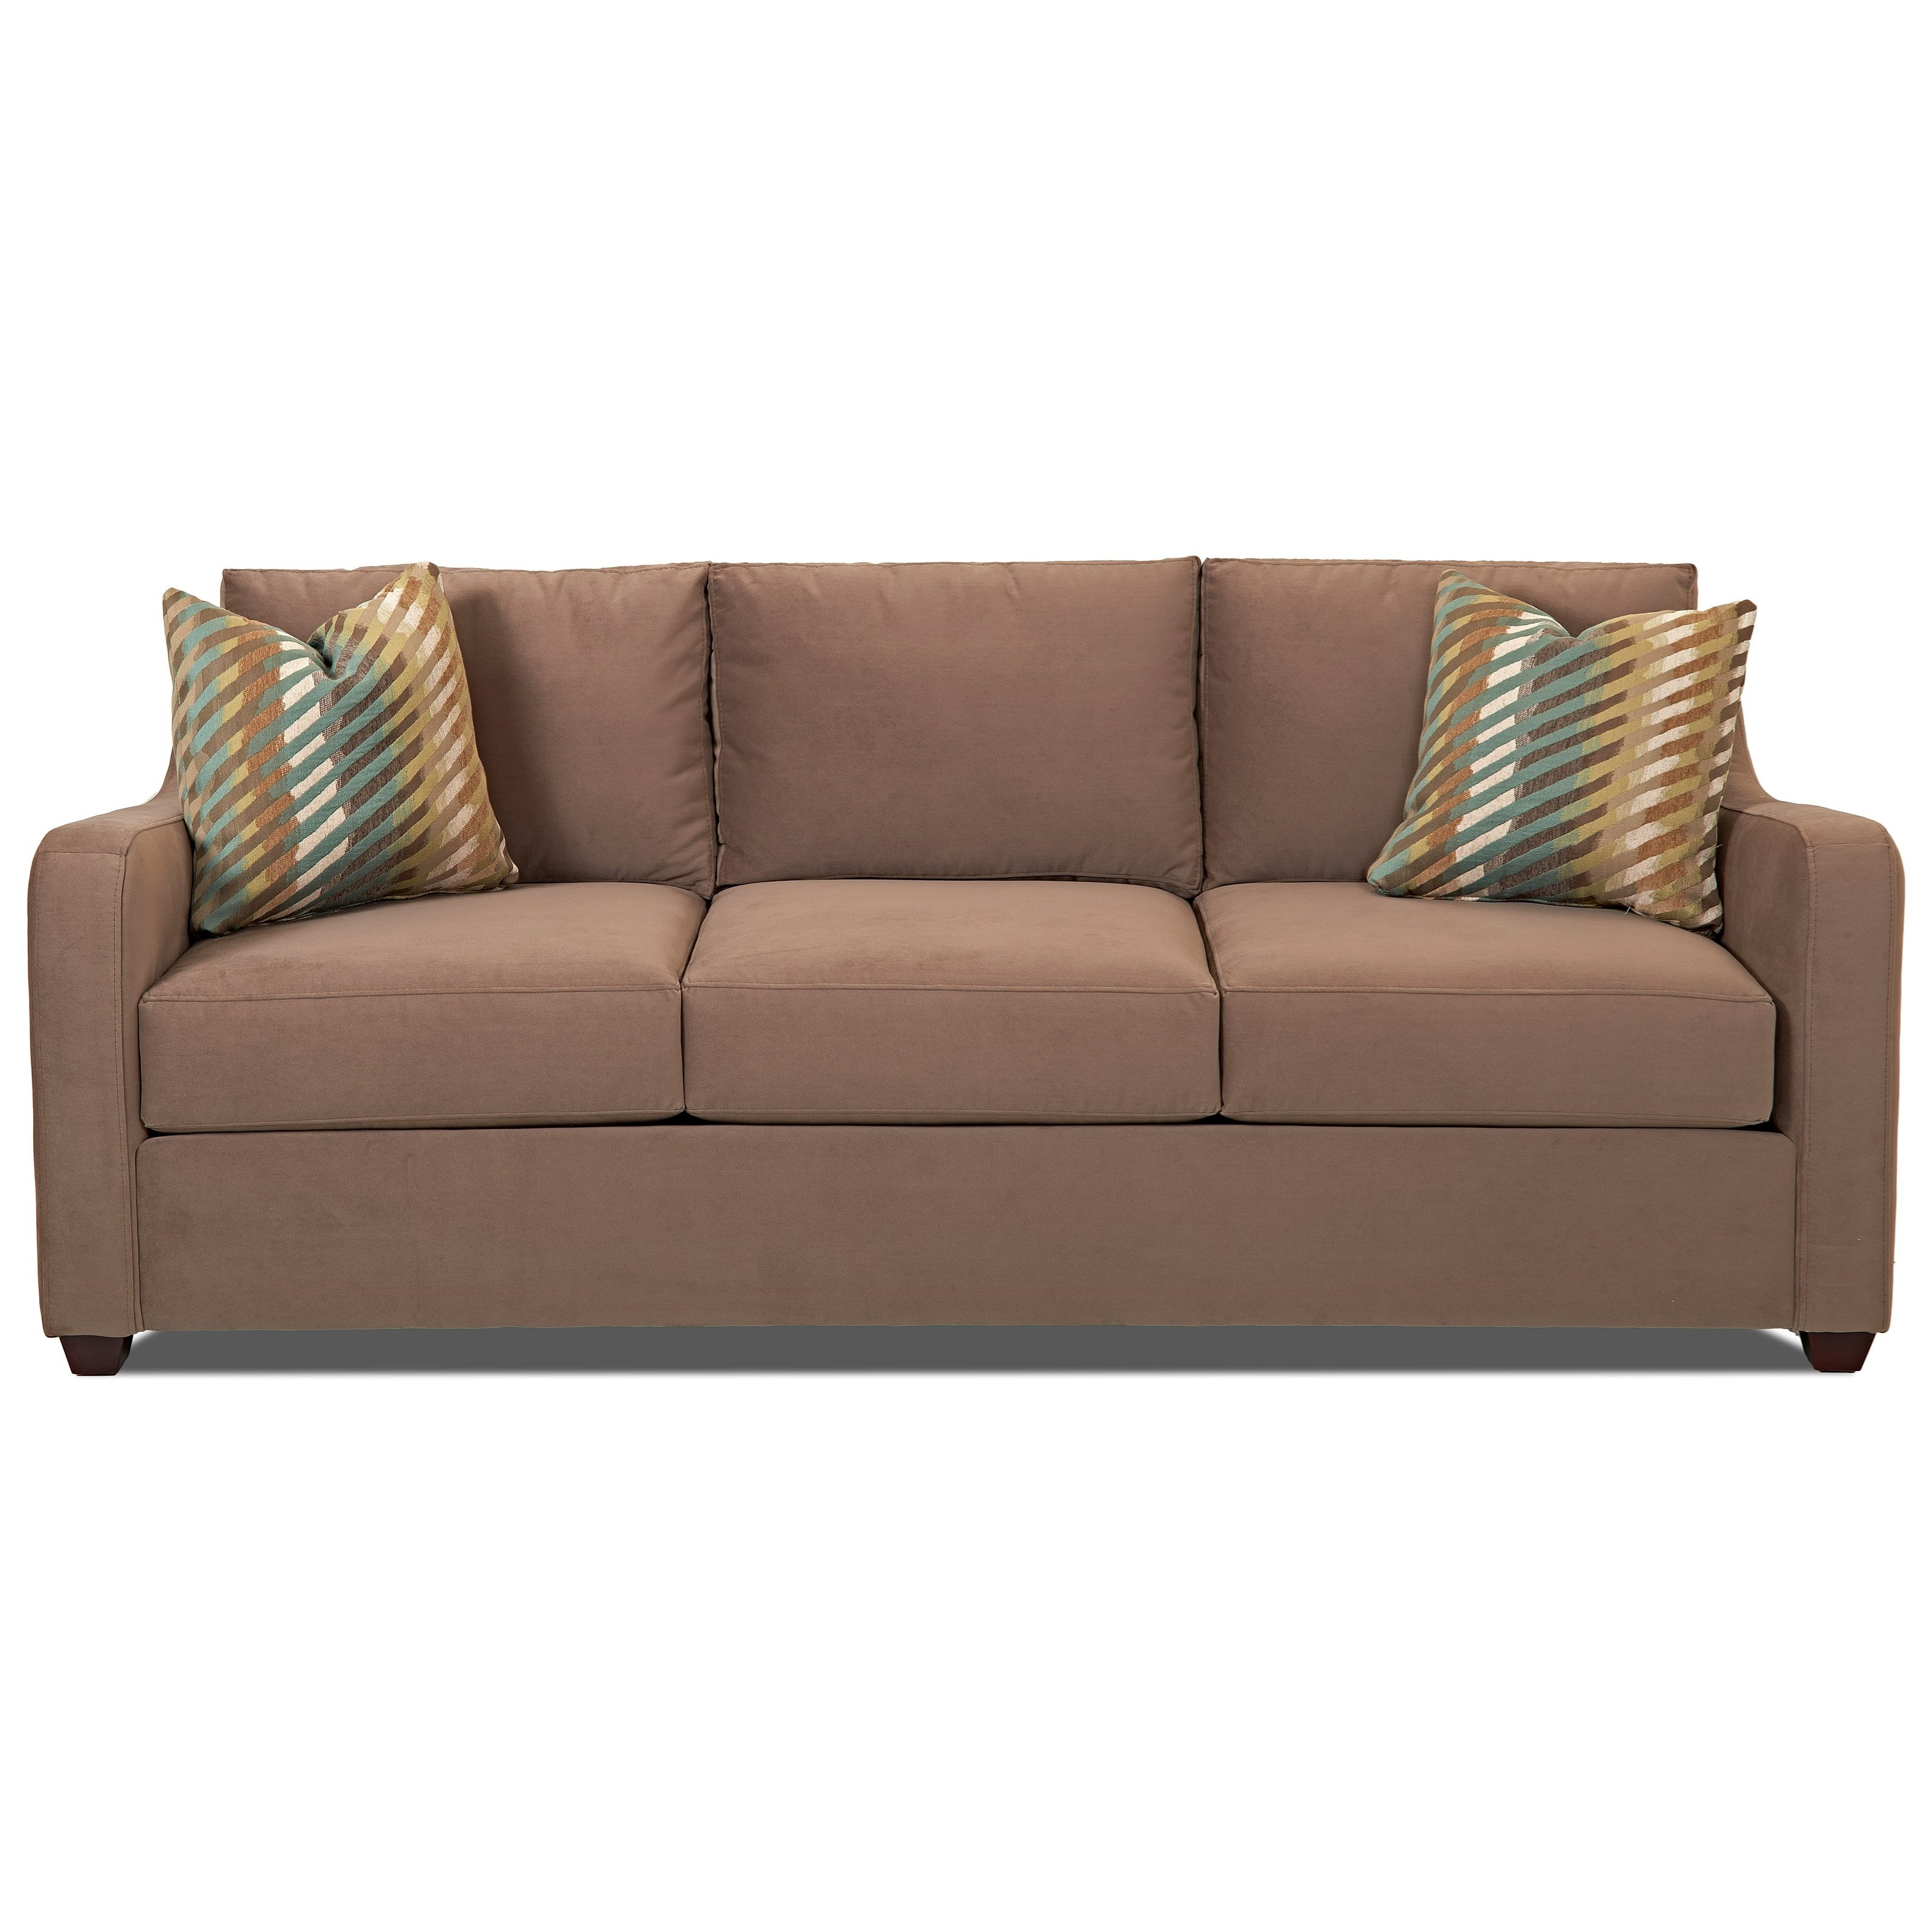 Klaussner Greer Enso Memory Foam Queen Sleeper Sofa - Item Number: K29200 EQSL-OAKL - MOCH